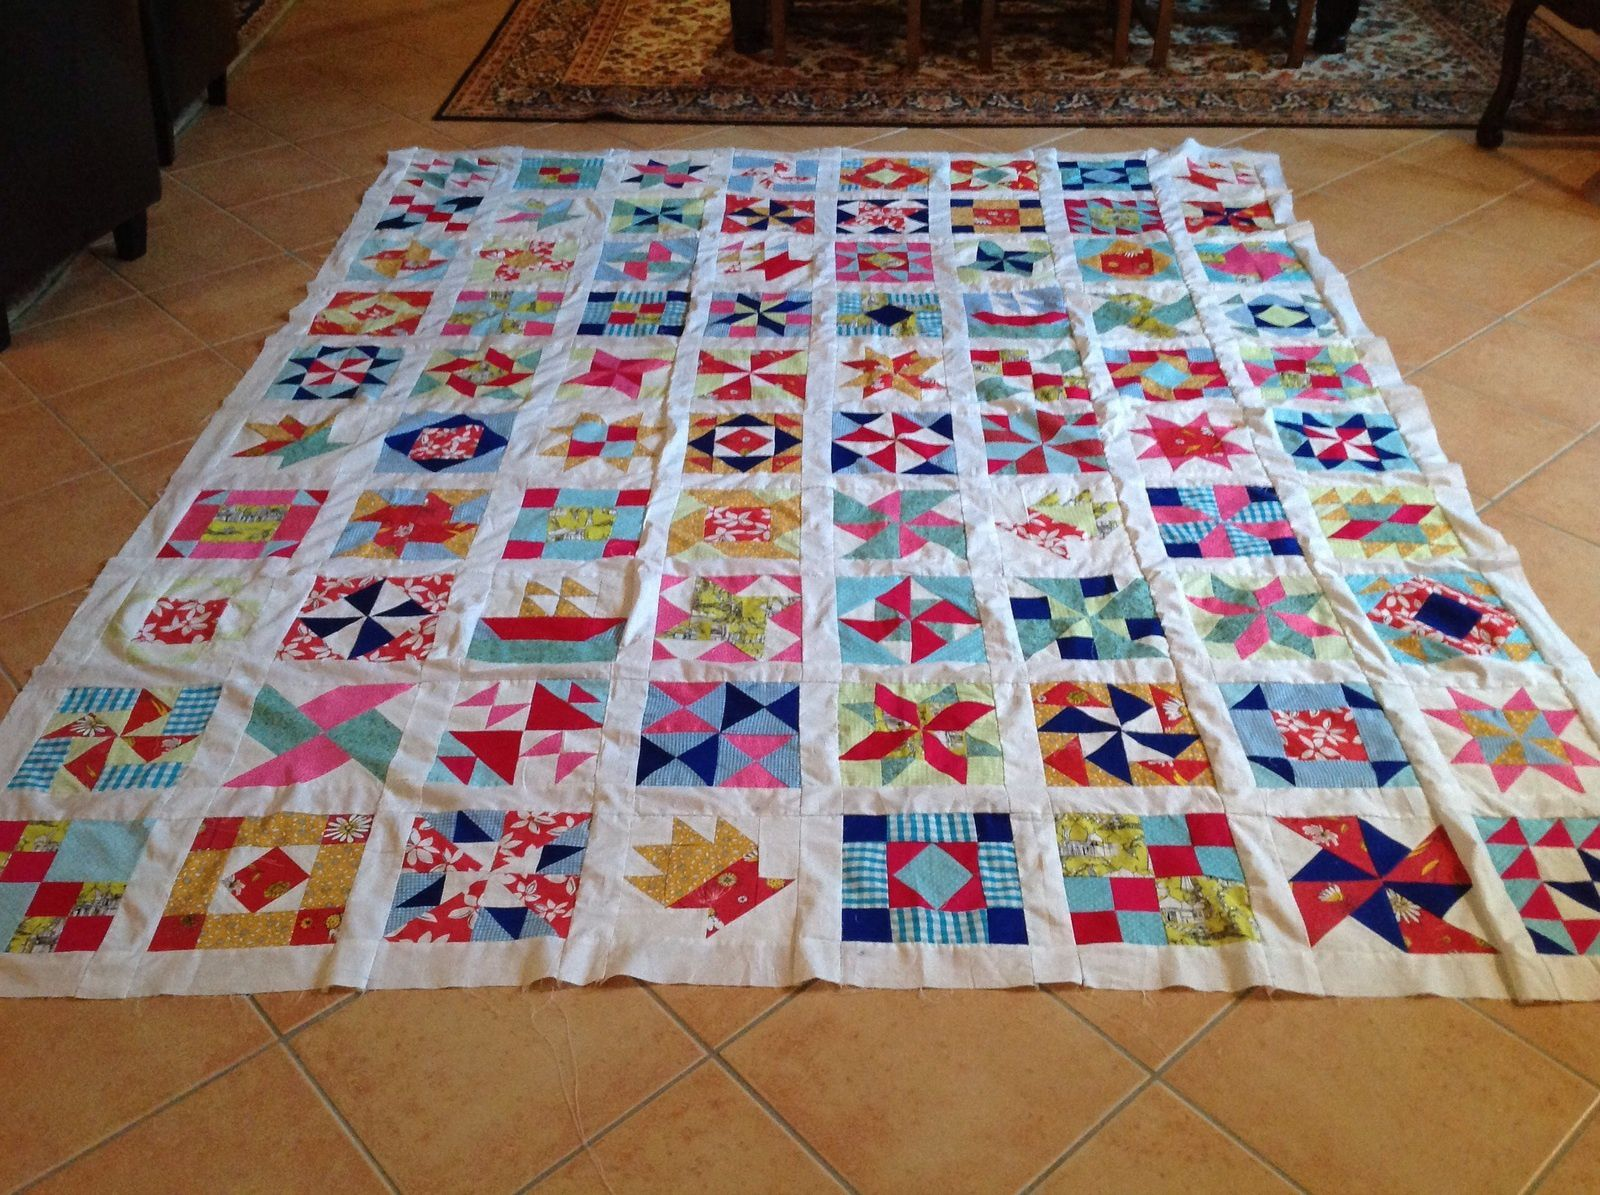 Patchwork facile. Le top est terminé